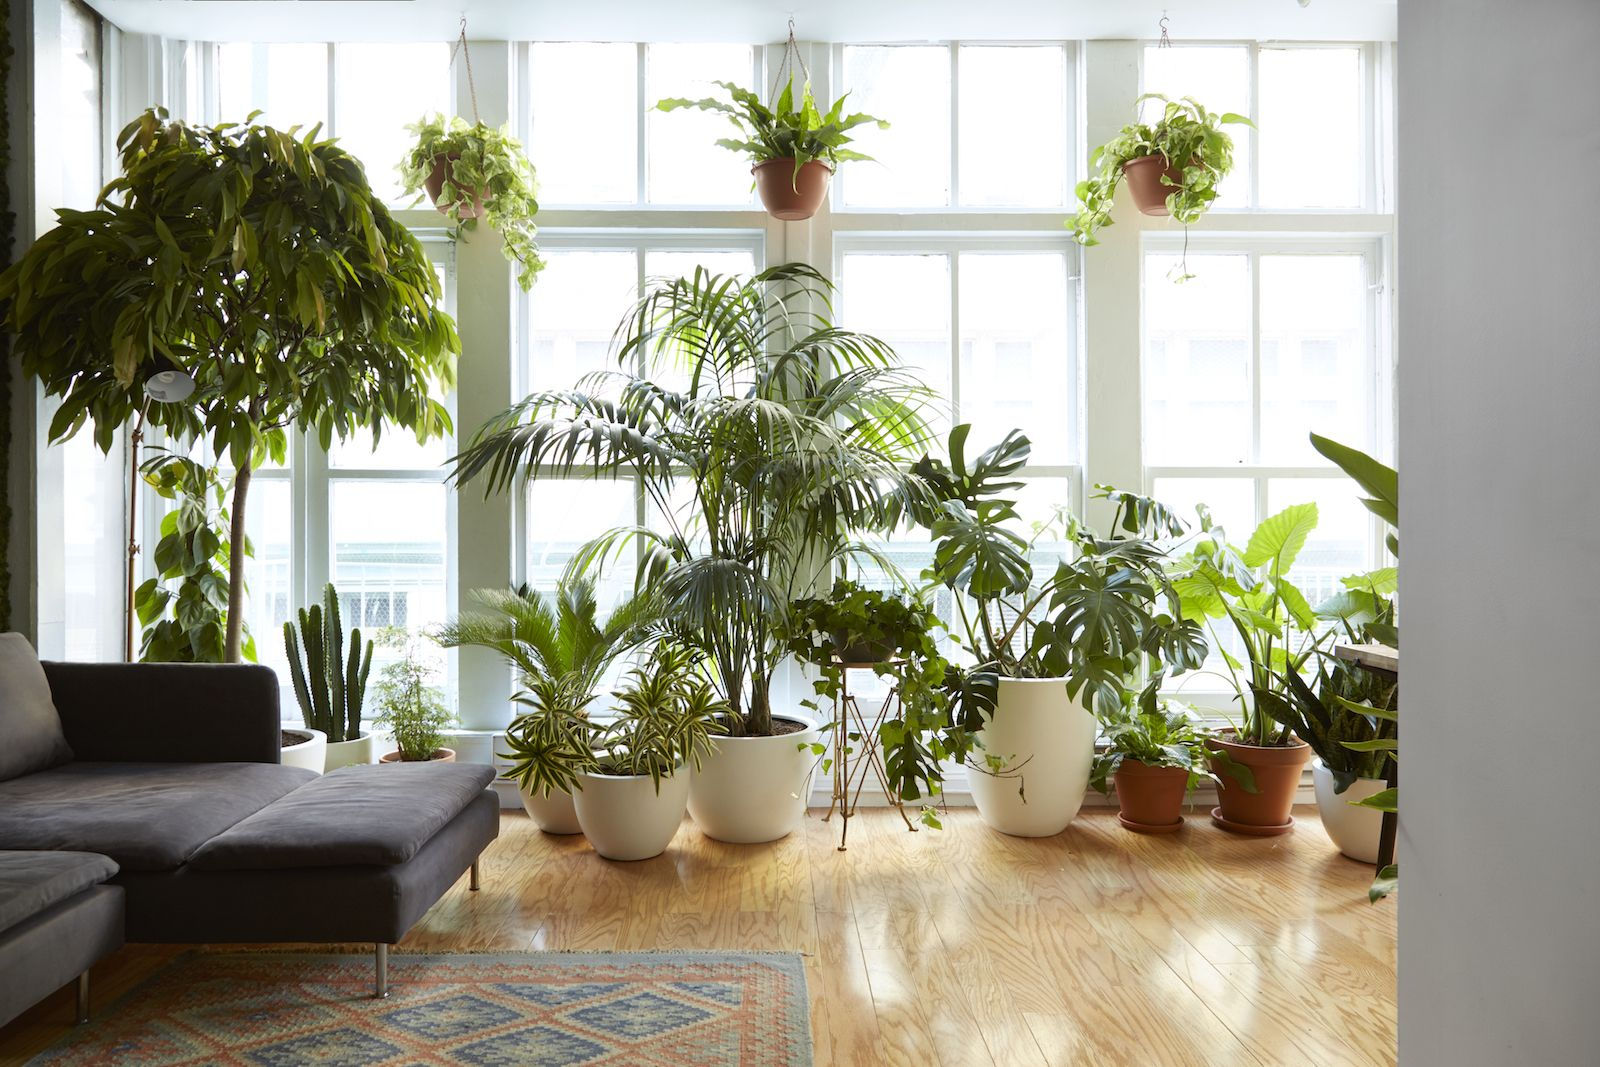 7 Gorgeous Houseplants That Will Purify The Air And Make